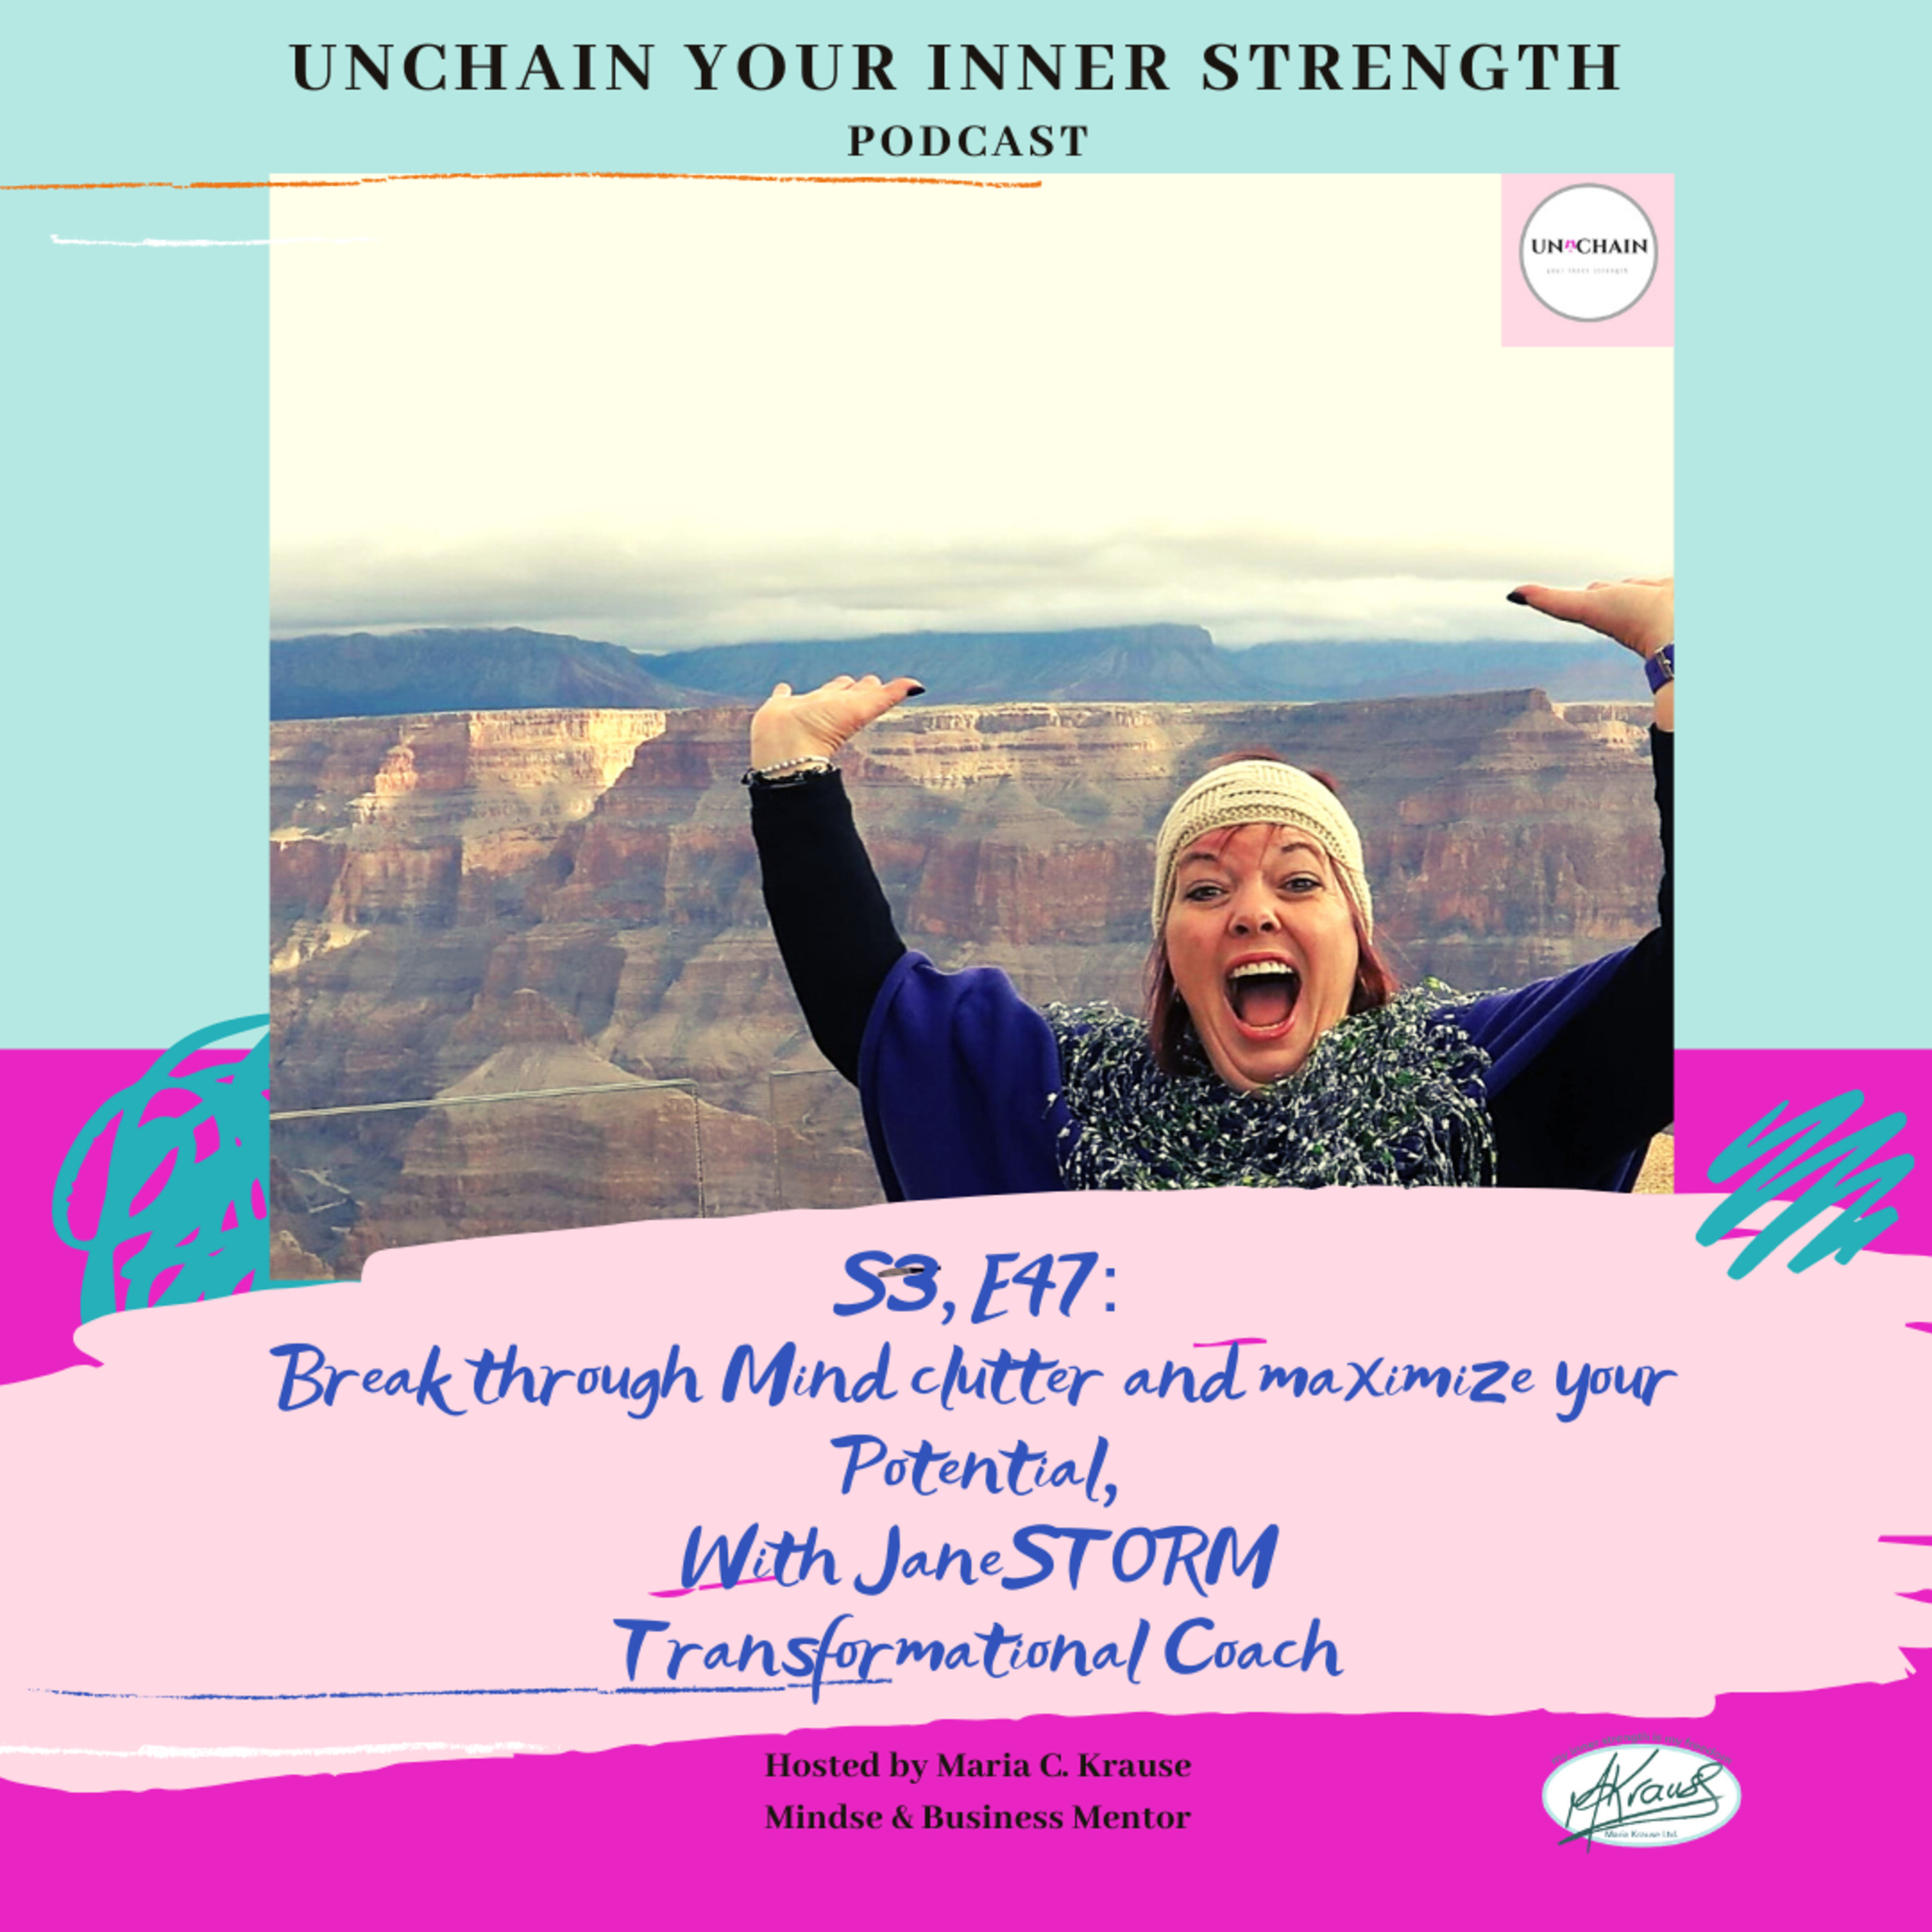 Reset your Mindset and Maaximize your full potential, with Jane Storm, Transformational Coach